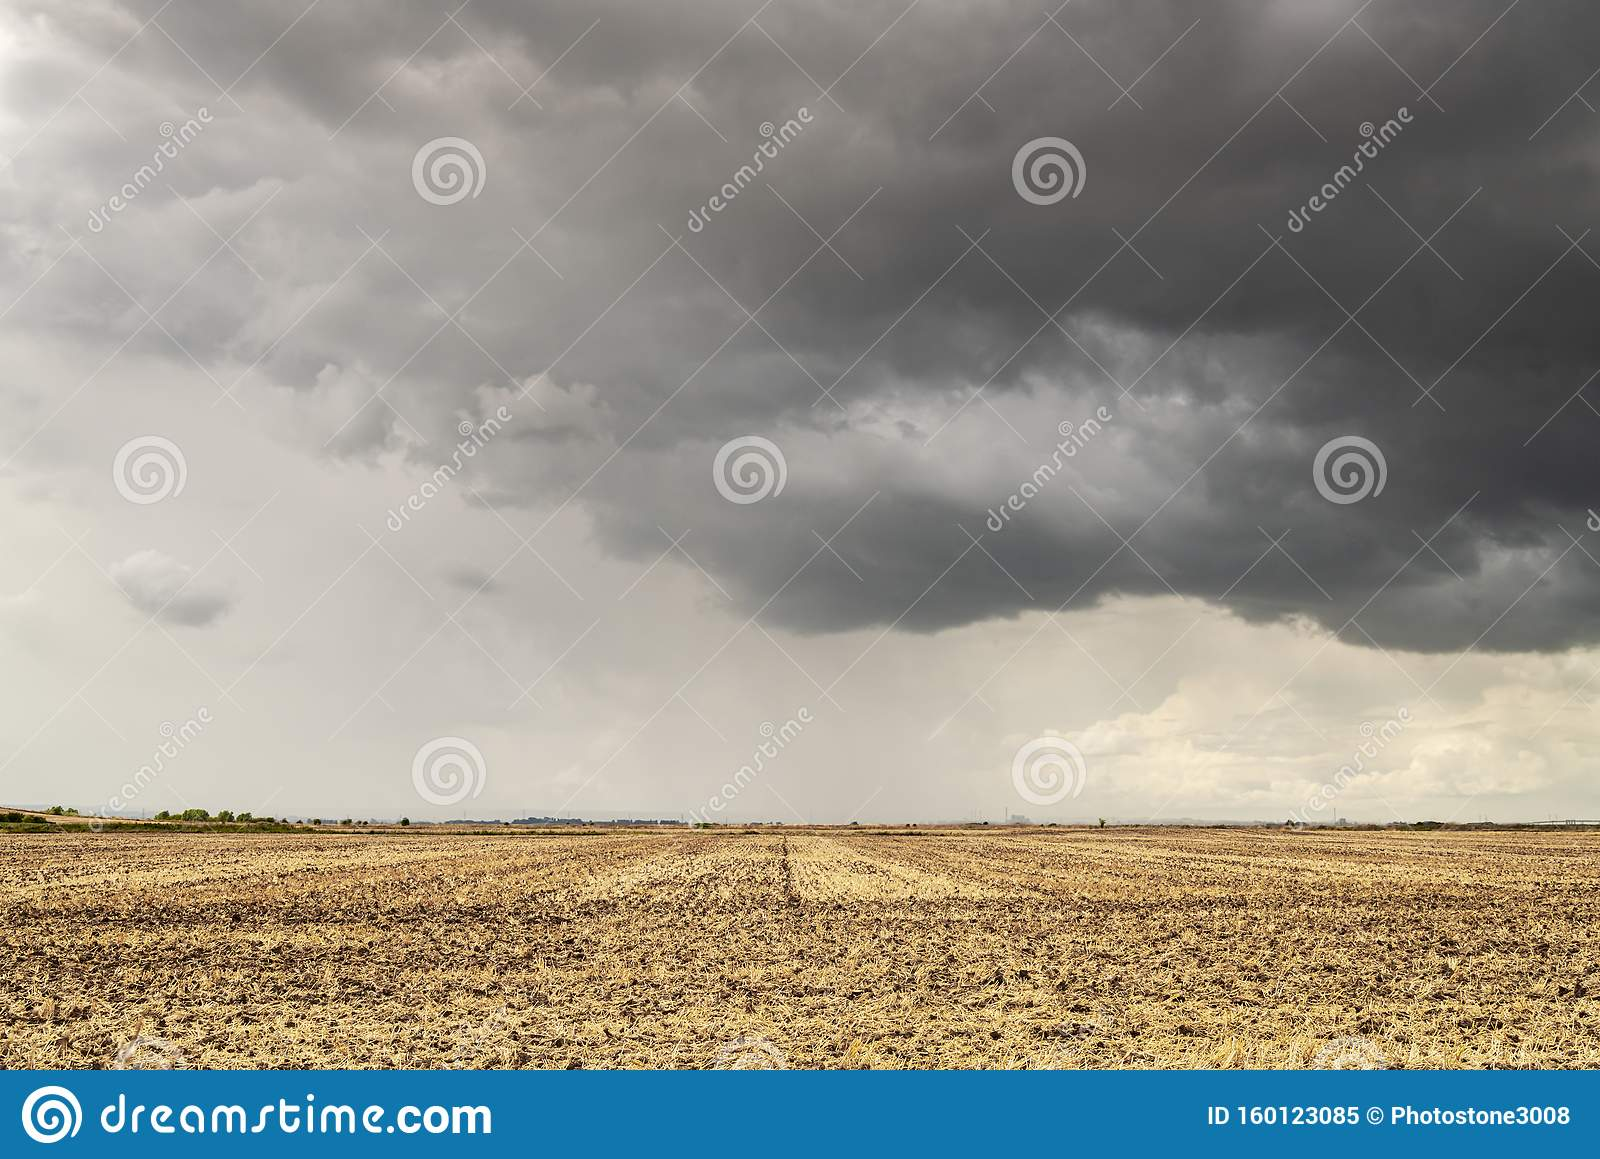 Clouds and Stubble